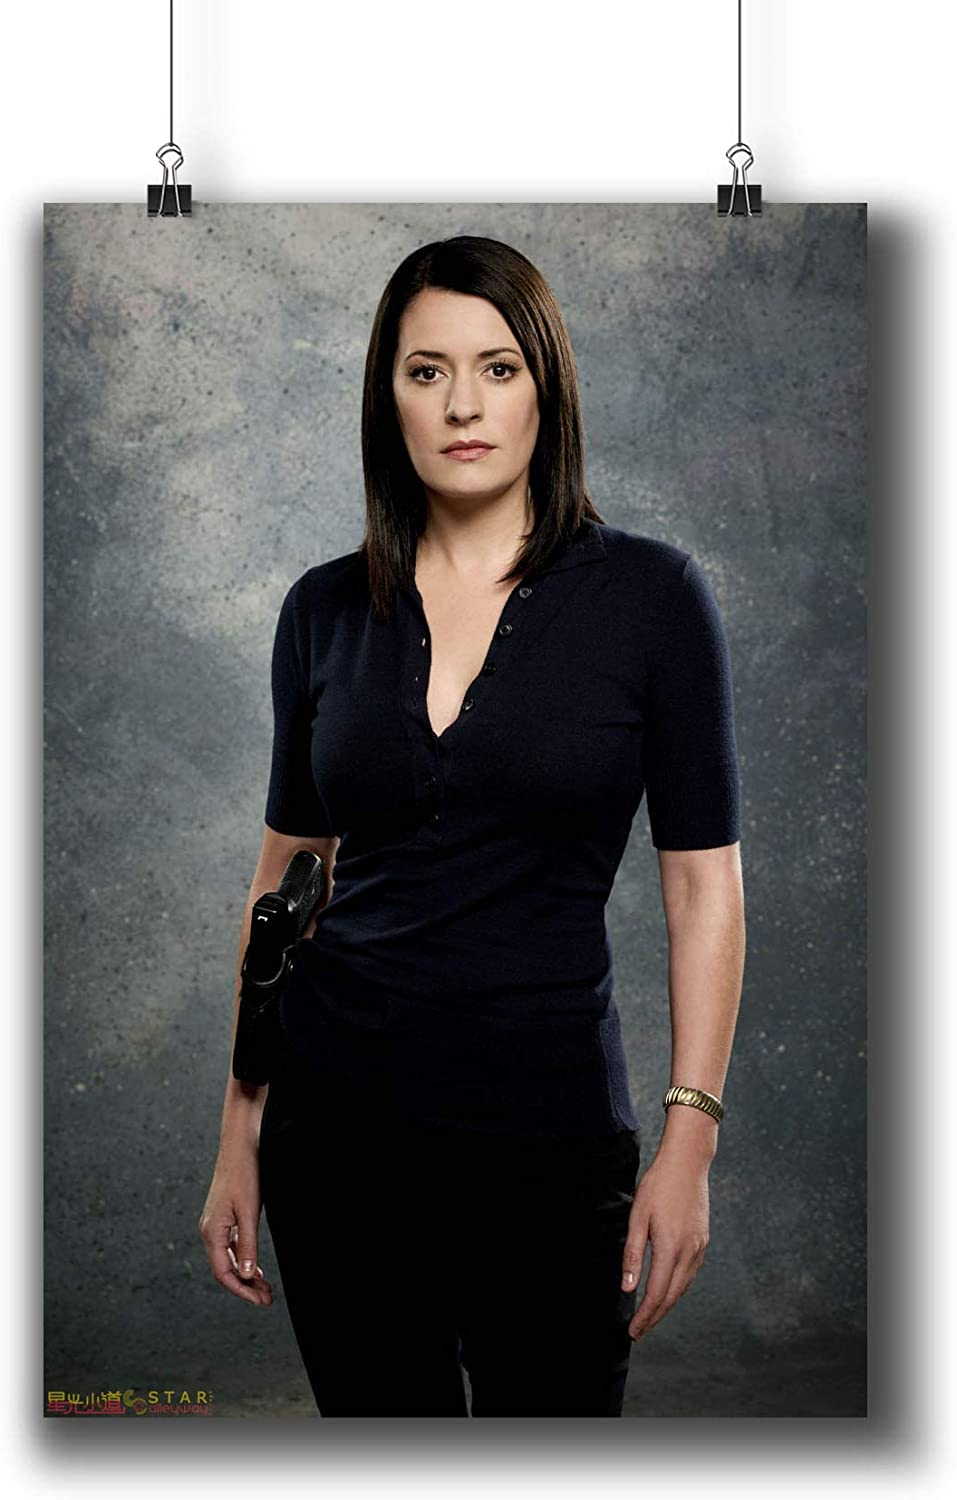 Criminal Minds TV Series Poster Small Prints 271-011 Emily Prentiss,Wall Art Decor for Dorm Bedroom Living Room (A4|8x12inch|21x29cm)